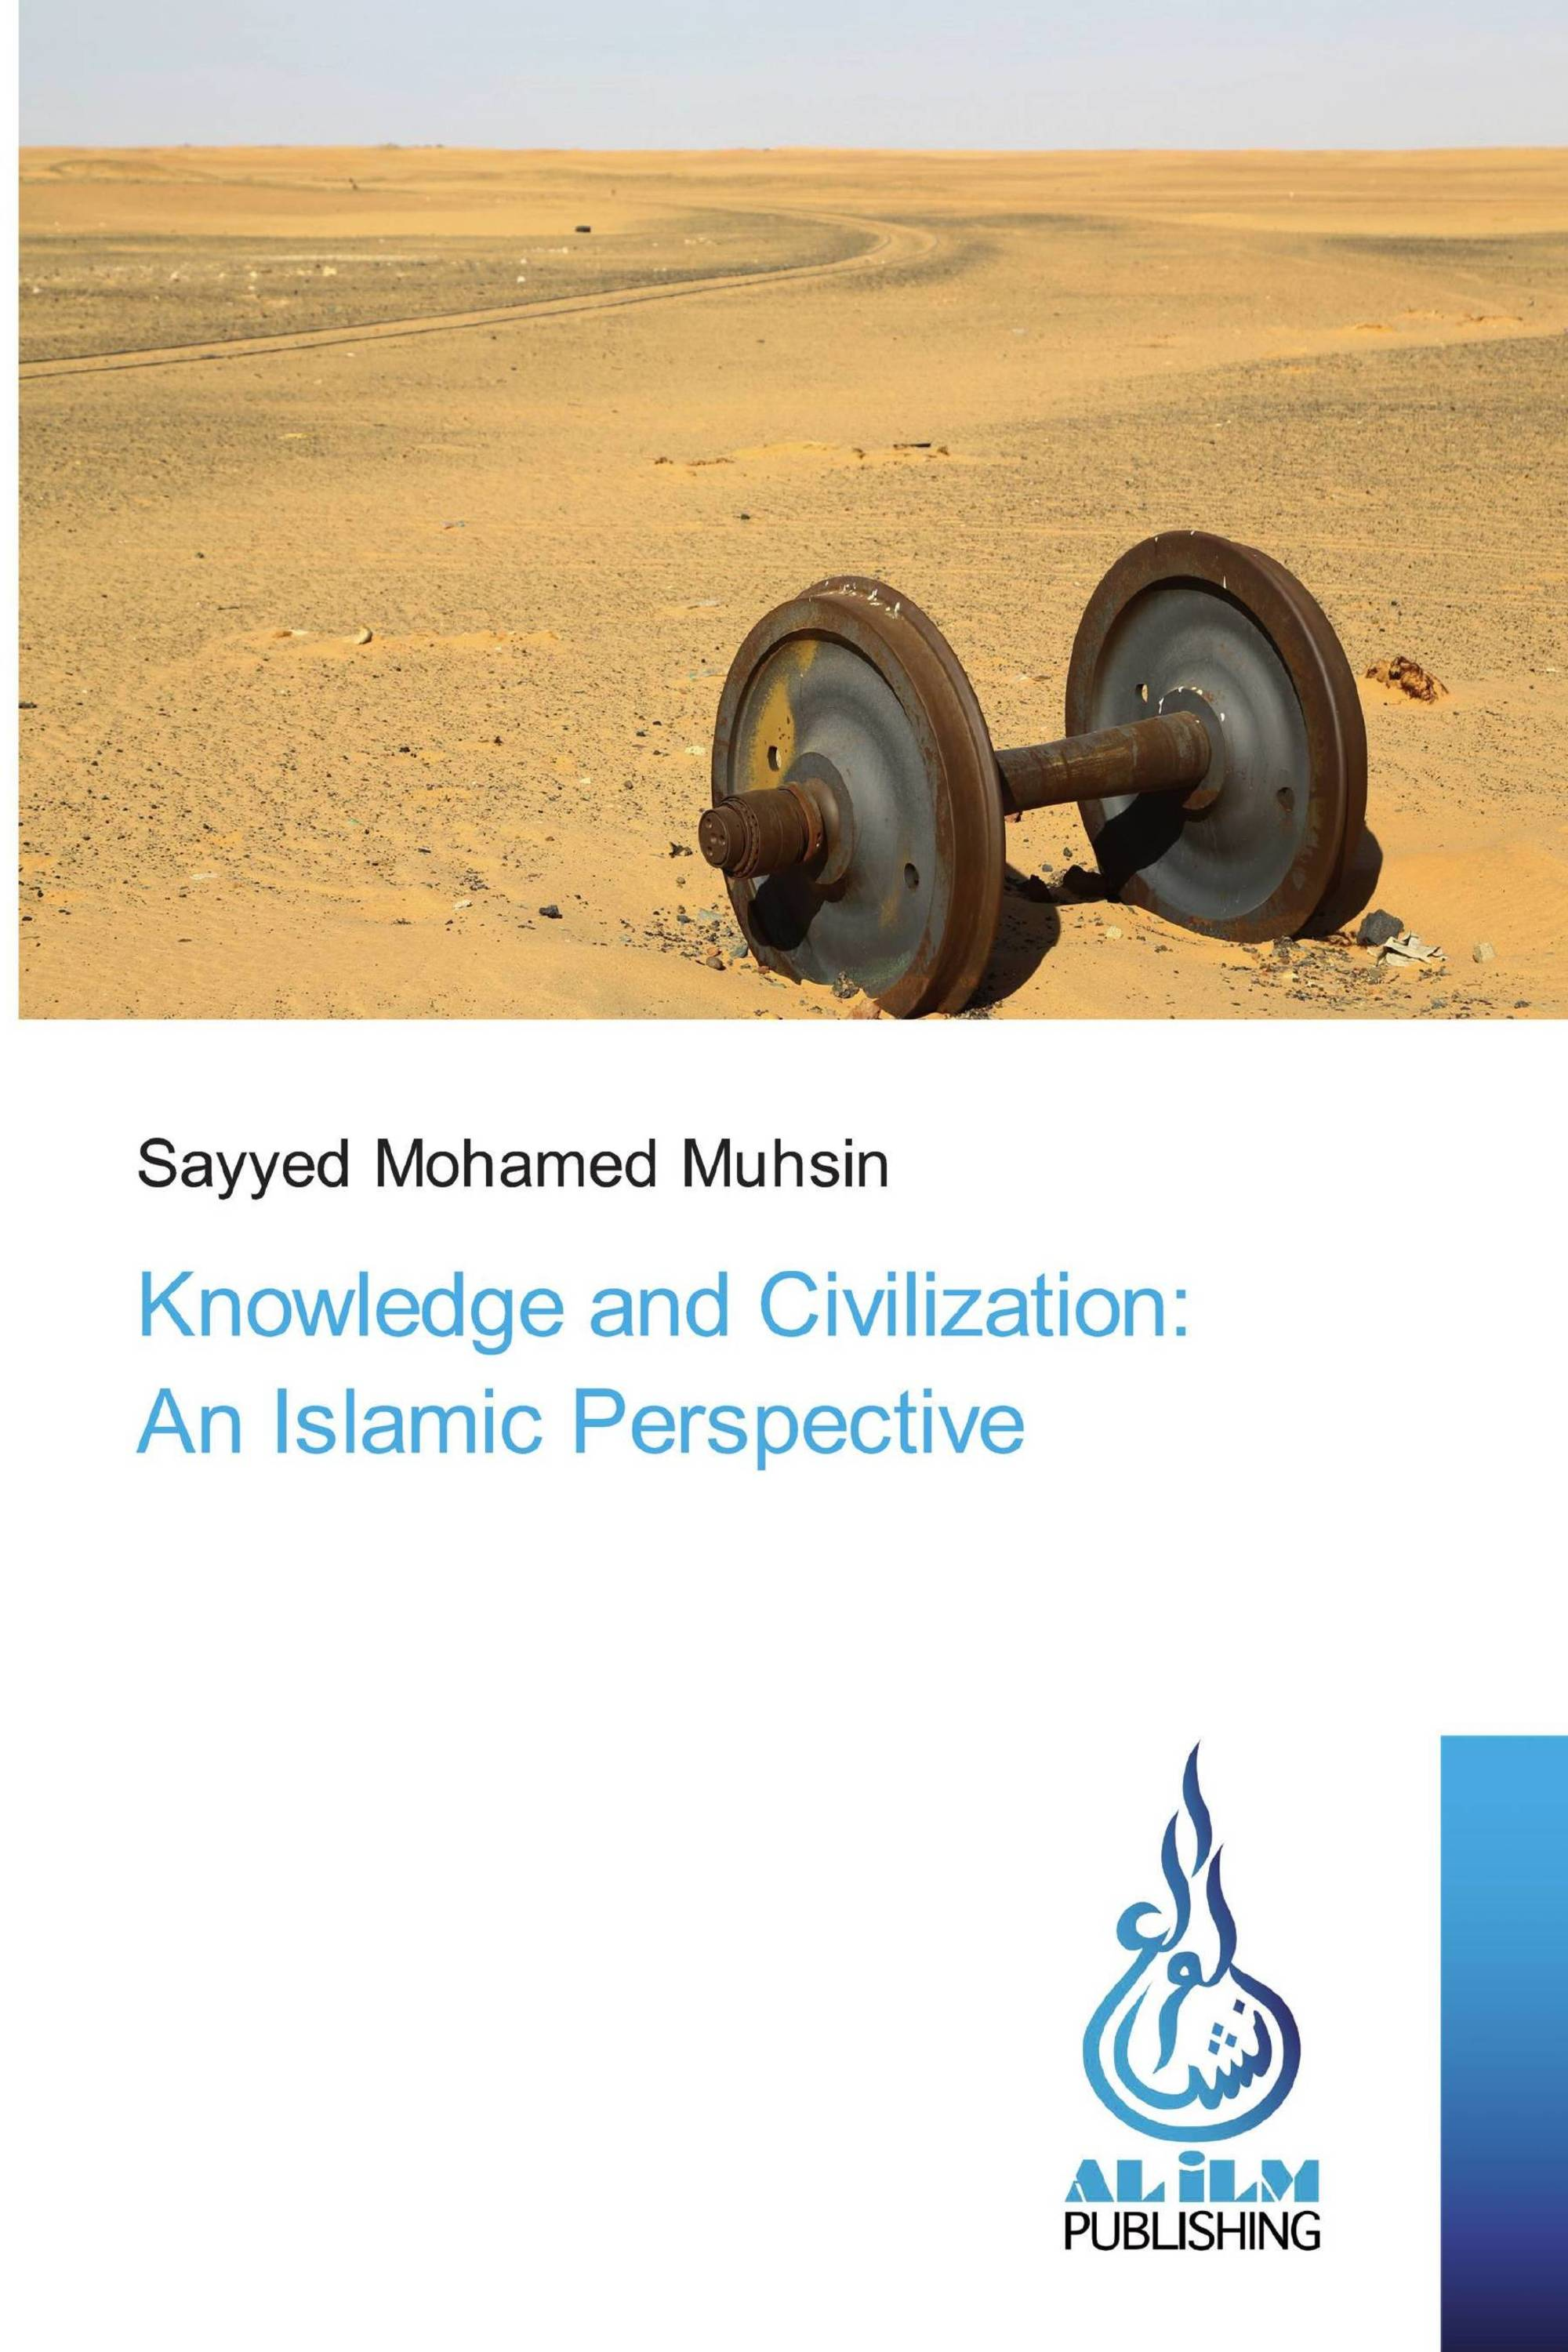 Knowledge and Civilization: An Islamic Perspective